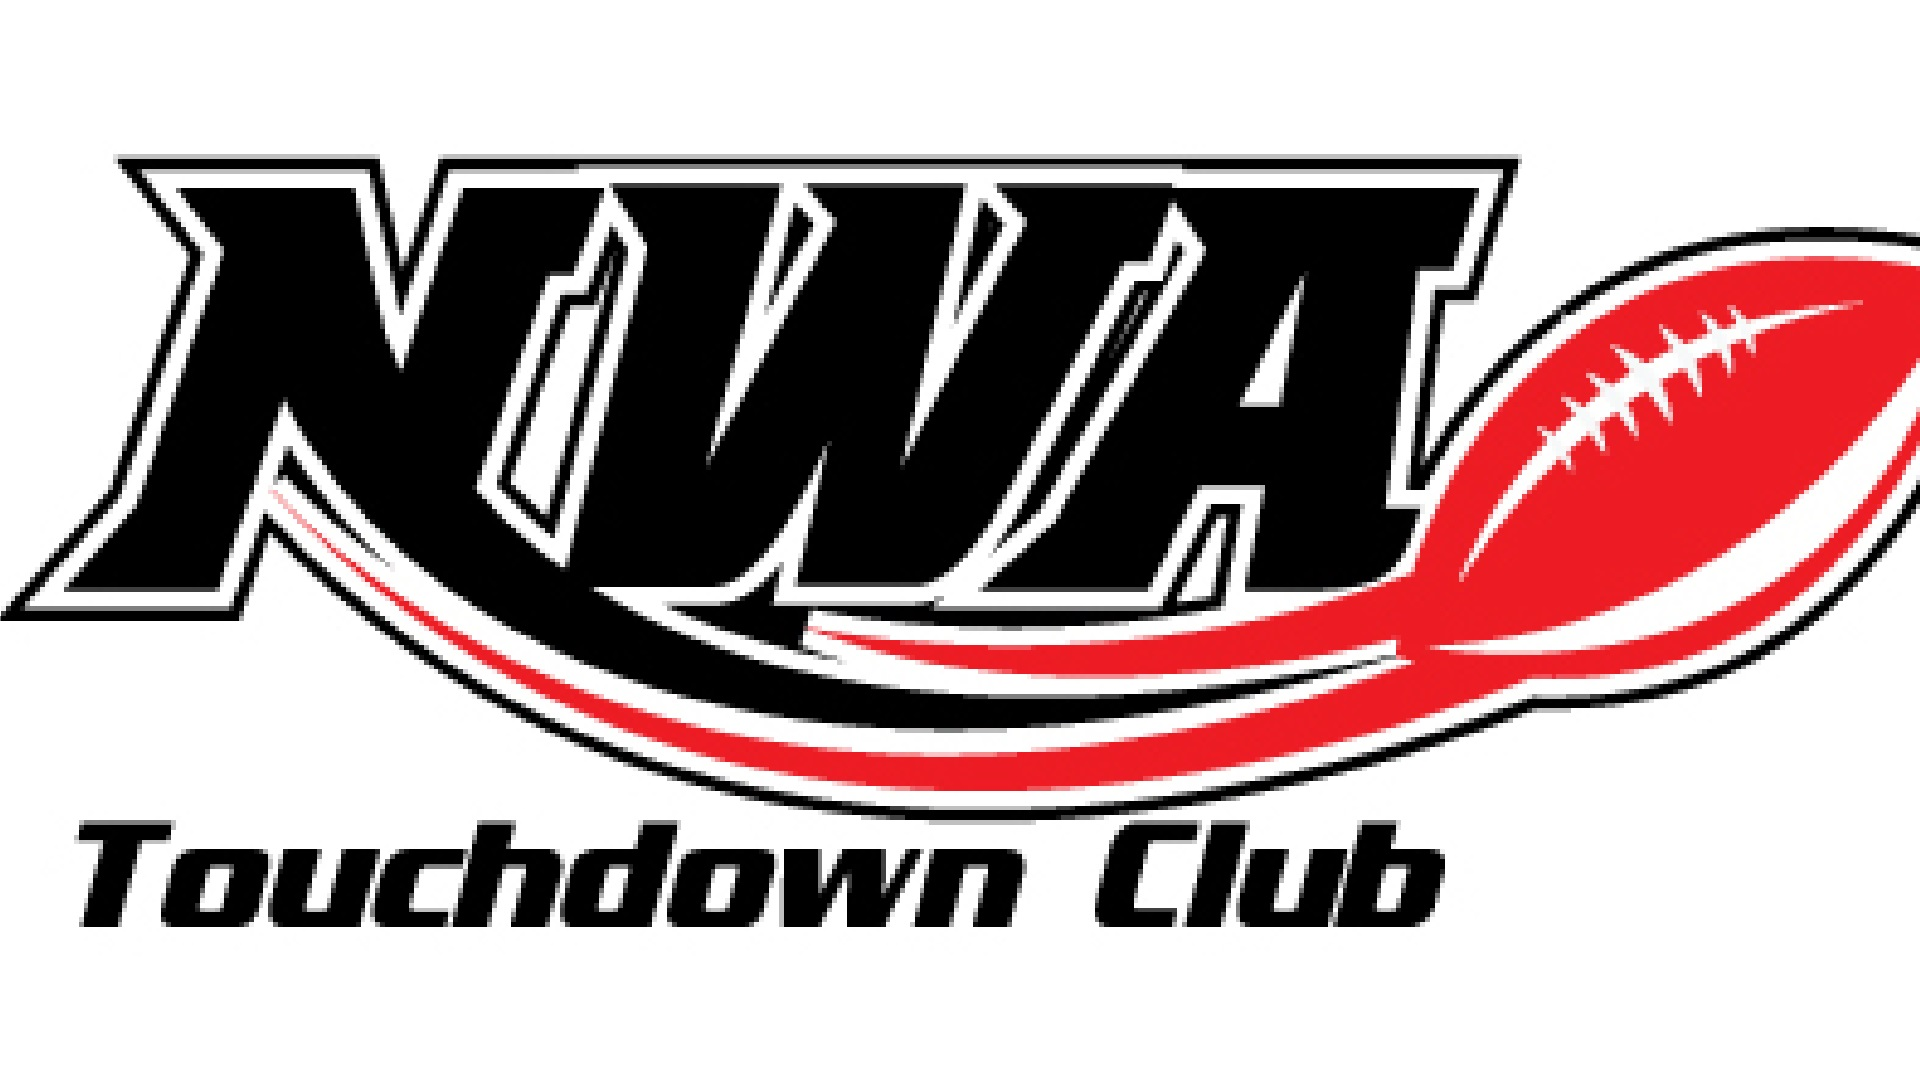 NWA TOUCHDOWN CLUB